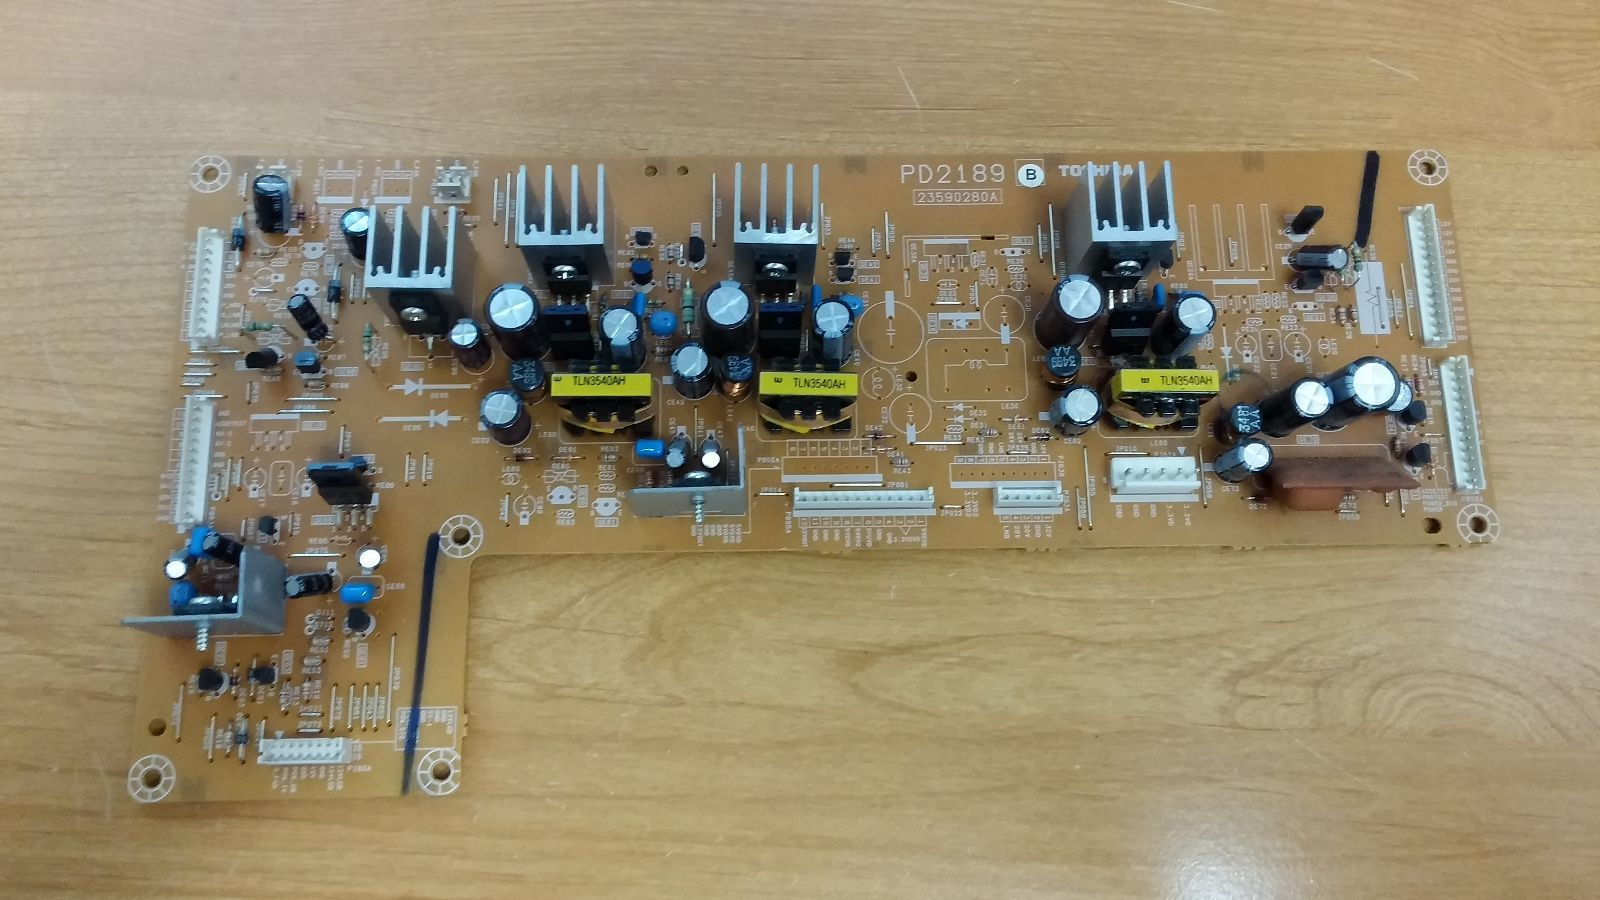 Toshiba 75001578 (PD2189B, 23590280A) Low B Board